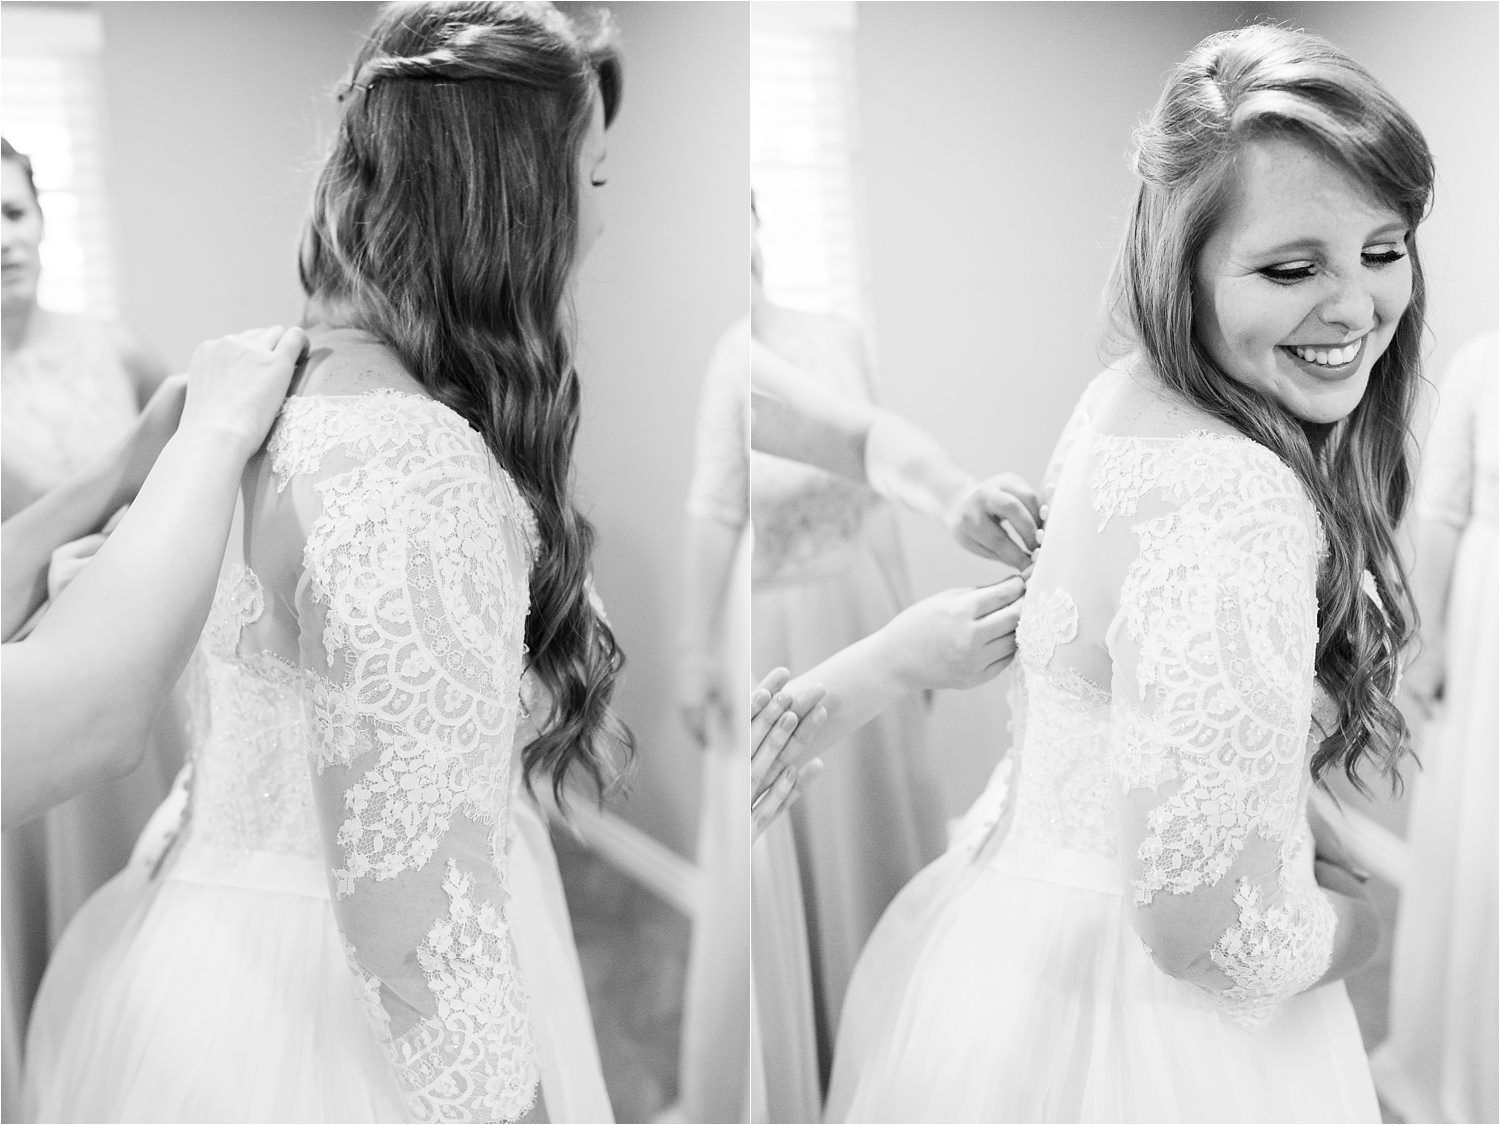 Black and White Wedding Photos - https://brittneyhannonphotography.com